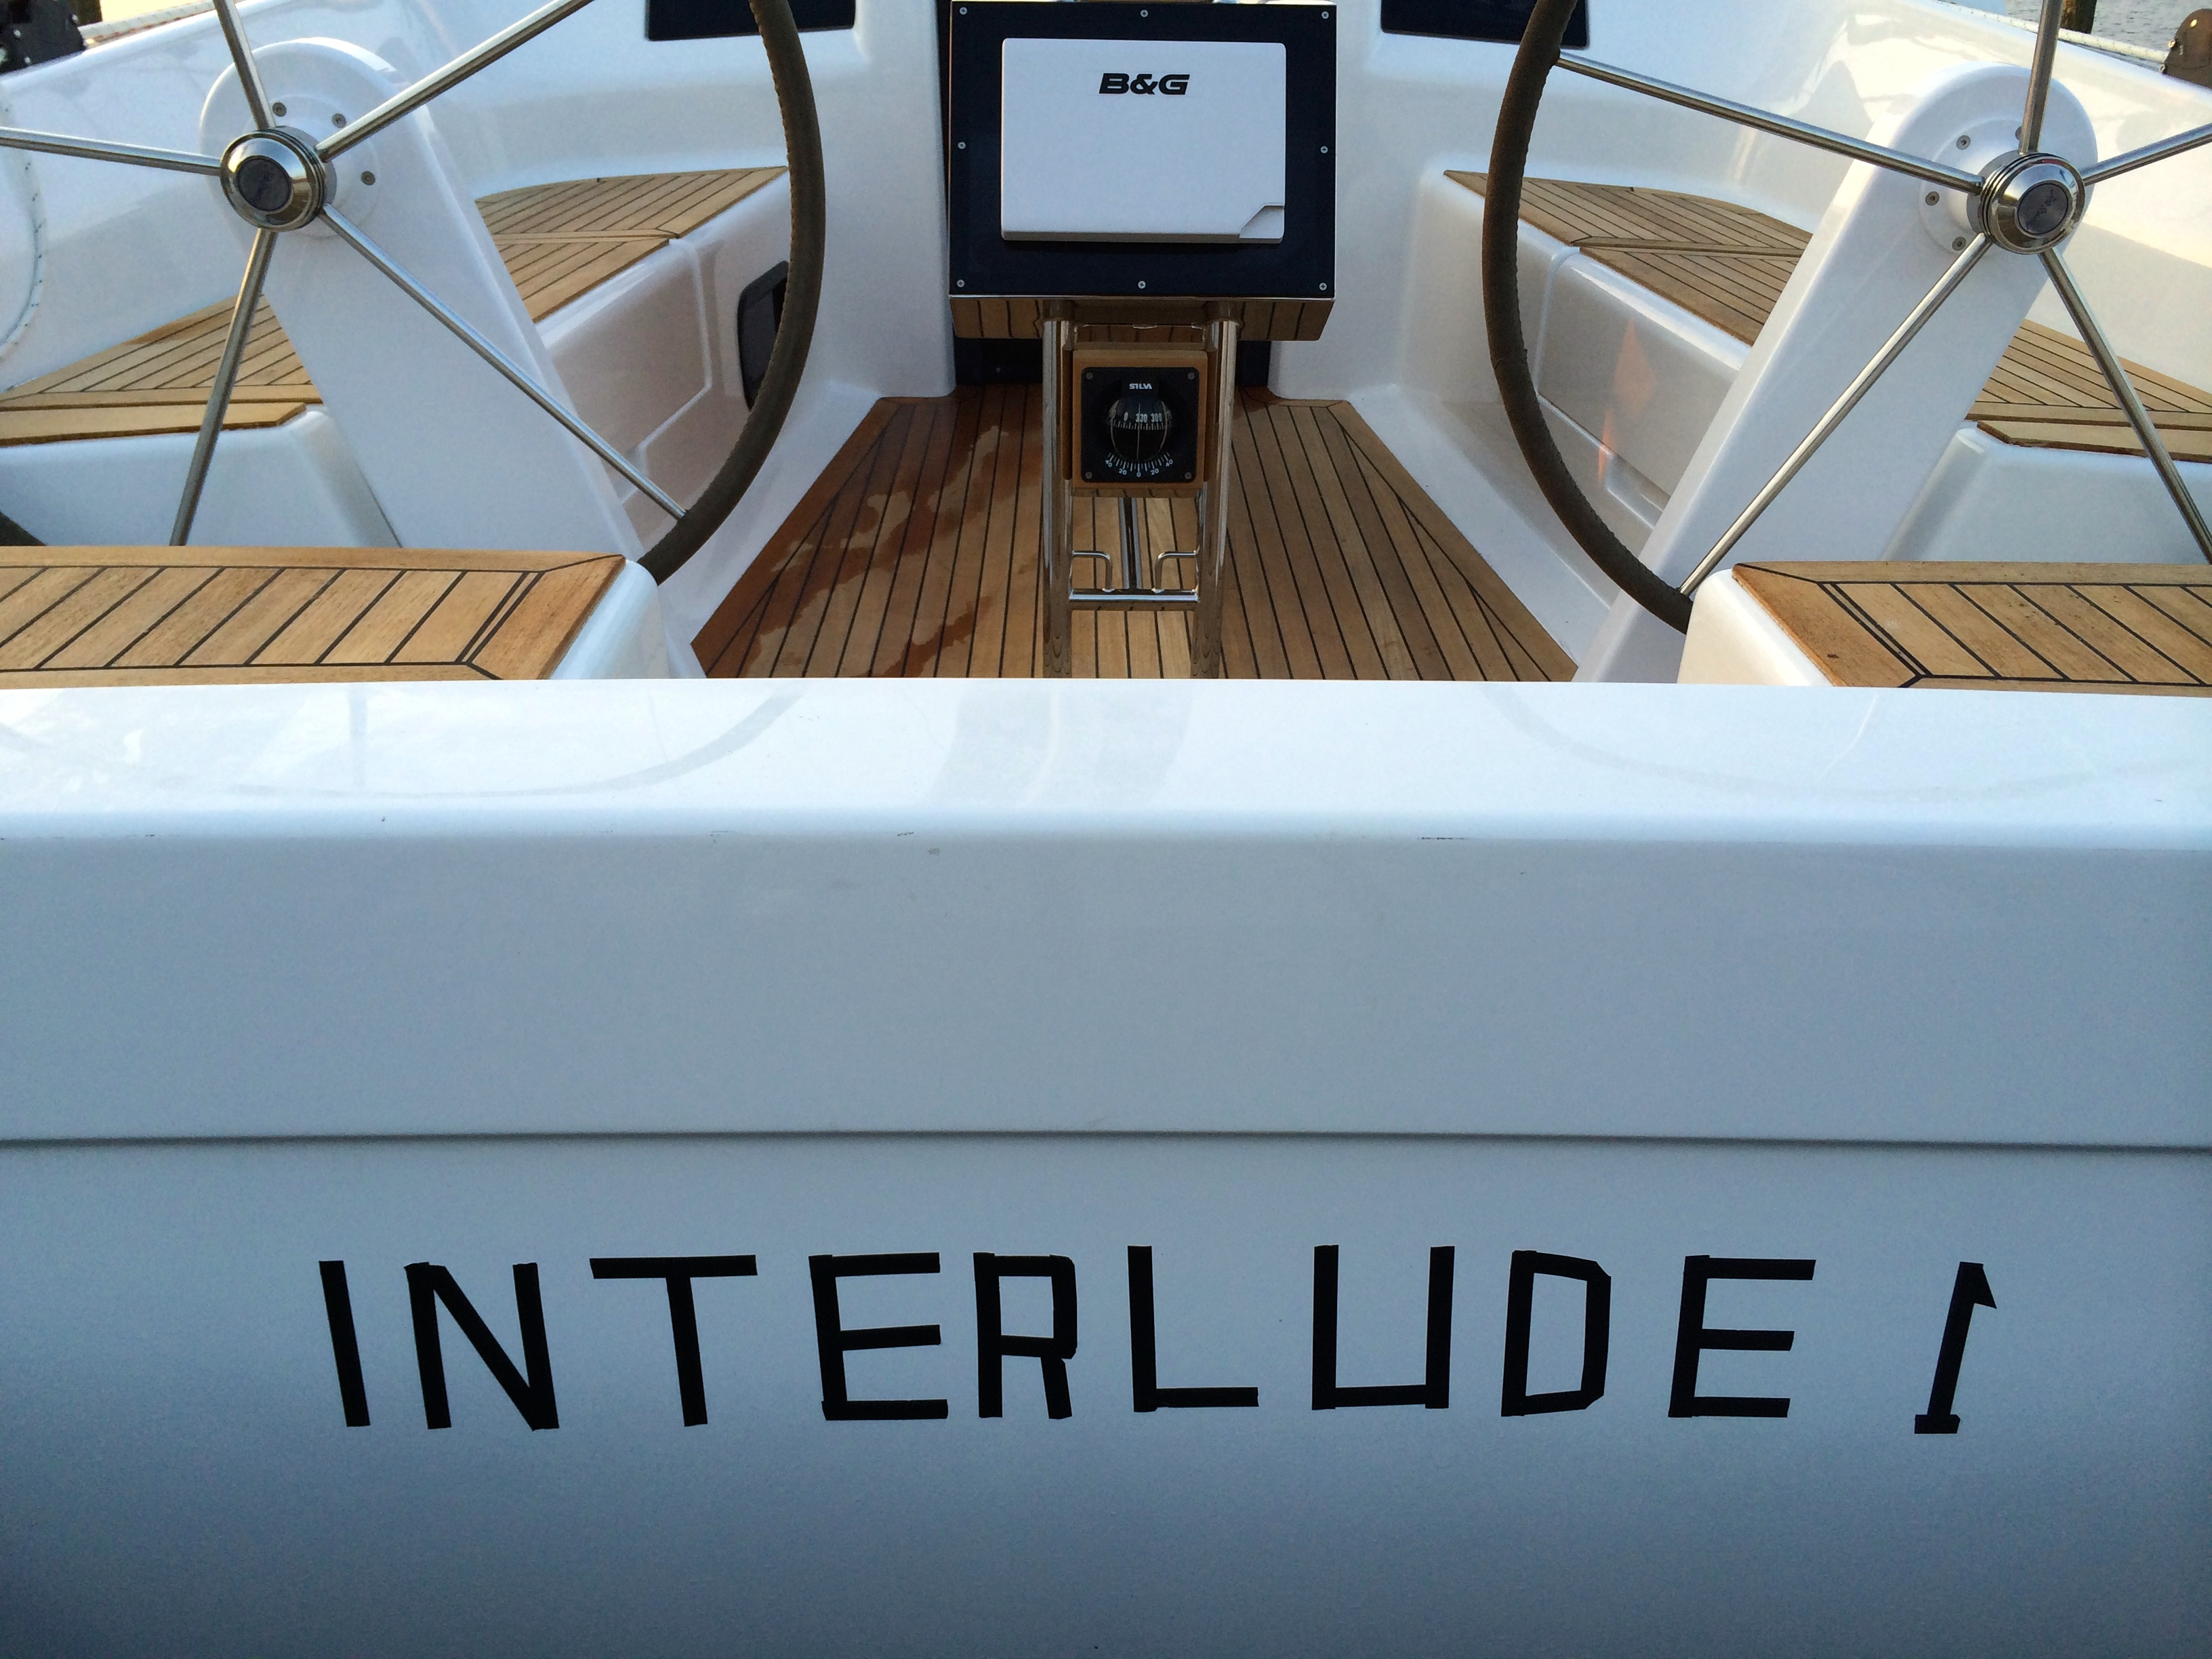 Interlude Transom